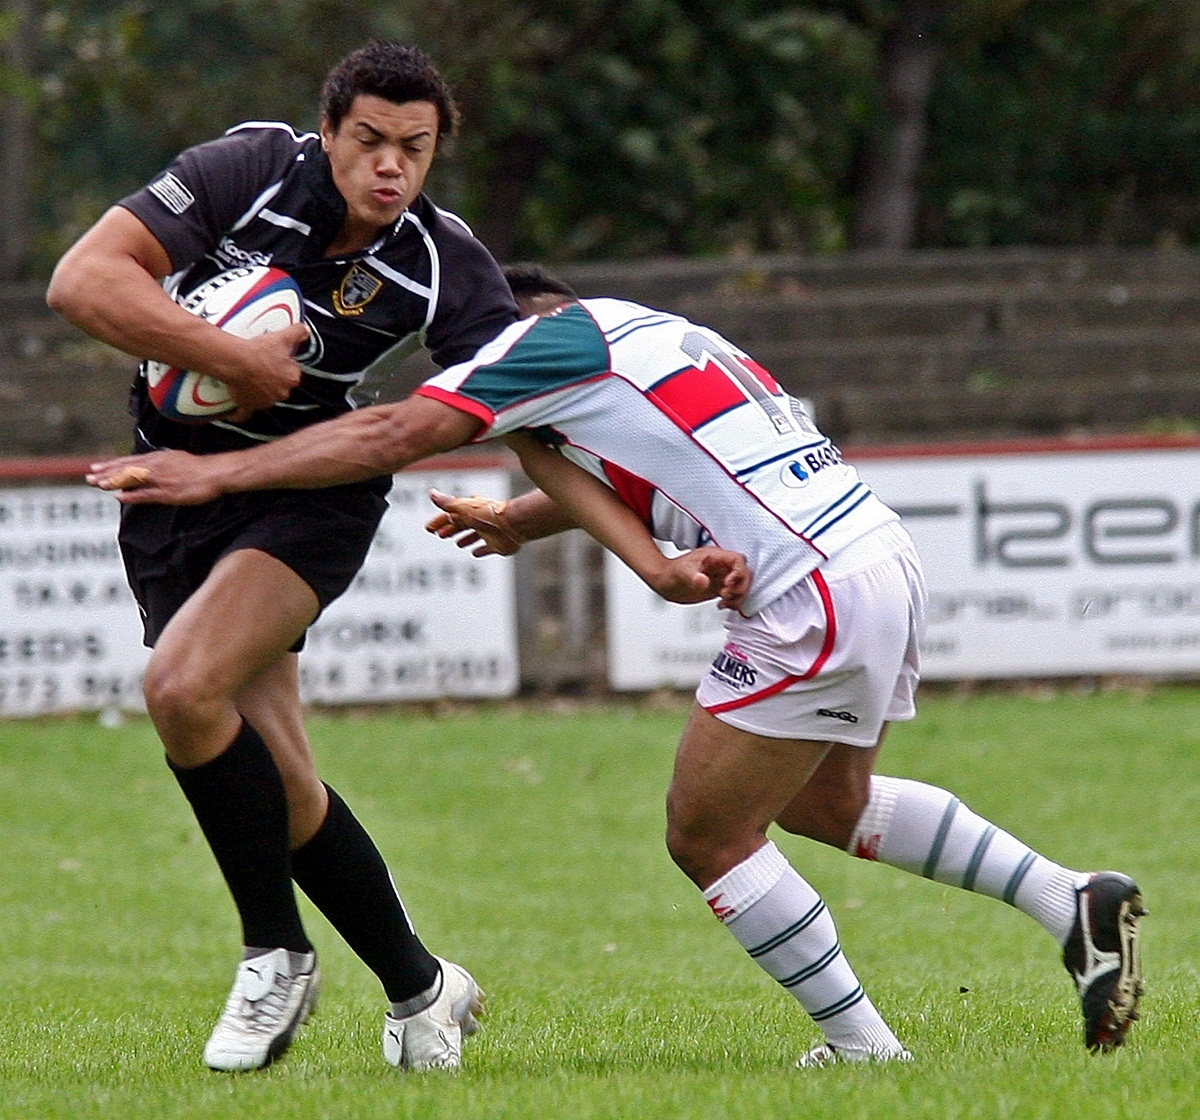 Luther Burrell, pictured playing for Otley in 2009, has been brought into the England squad as injury cover